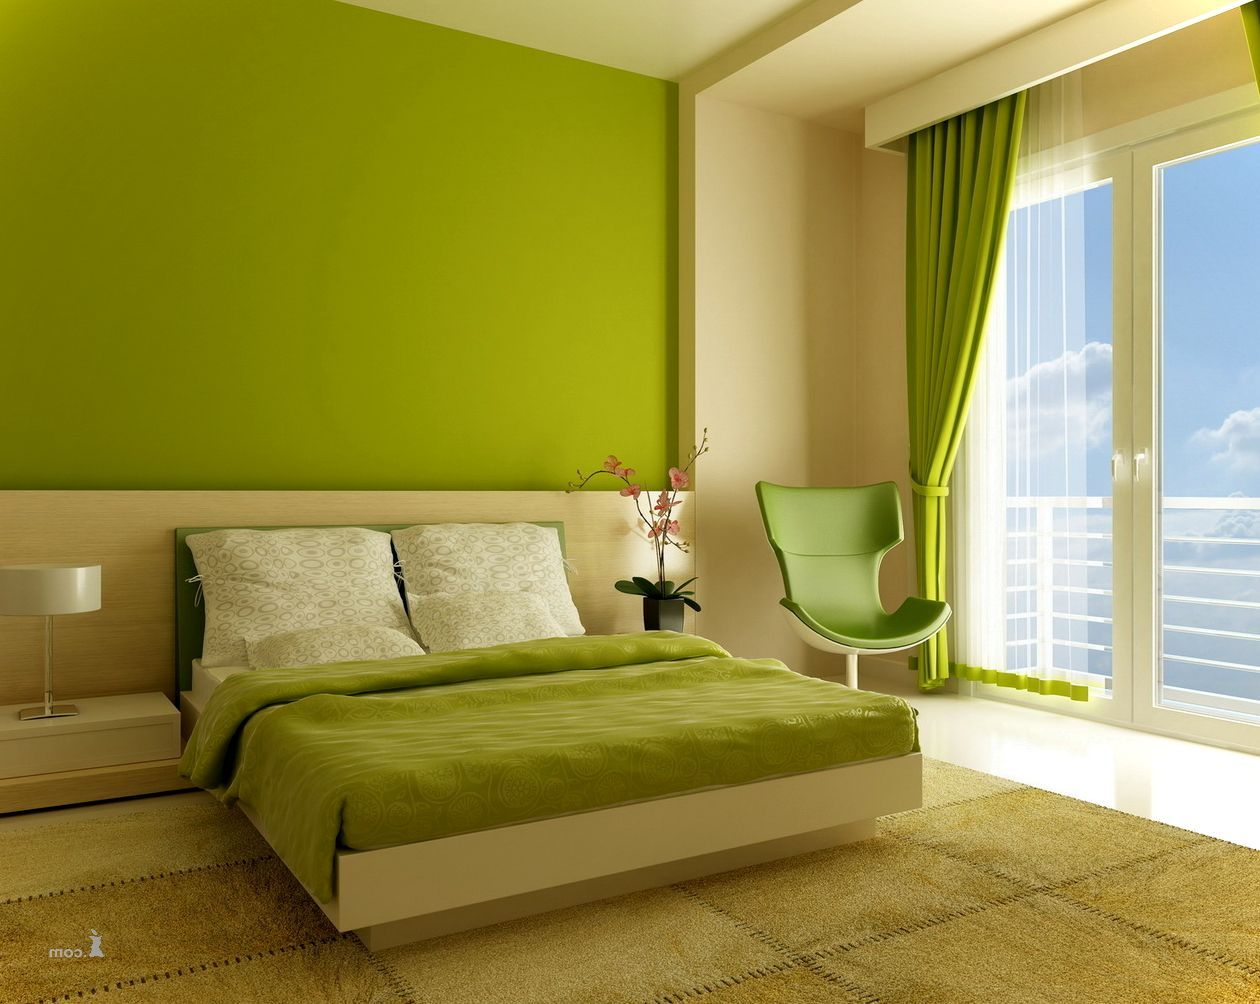 Interior furniture cool green and beige color wall asian for Bedroom interior furniture